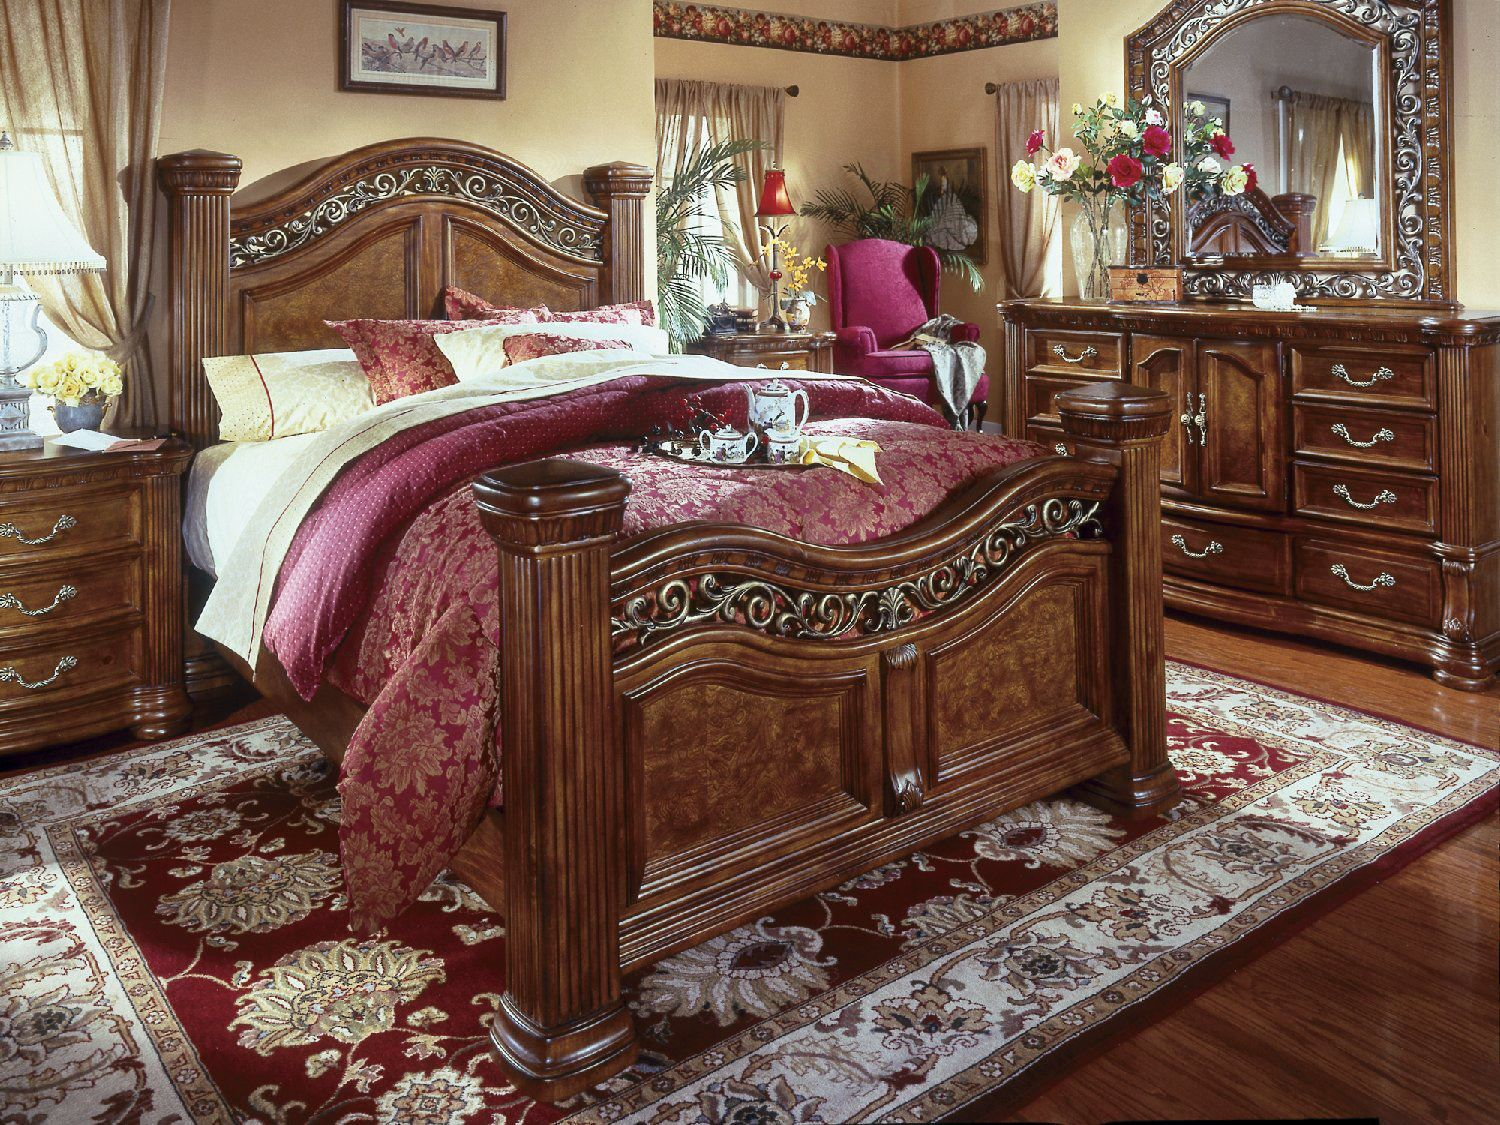 Kincaid Bedroom Suite Cordoba 4 Piece Queen Poster Bedroom Suite At Hom Furniture